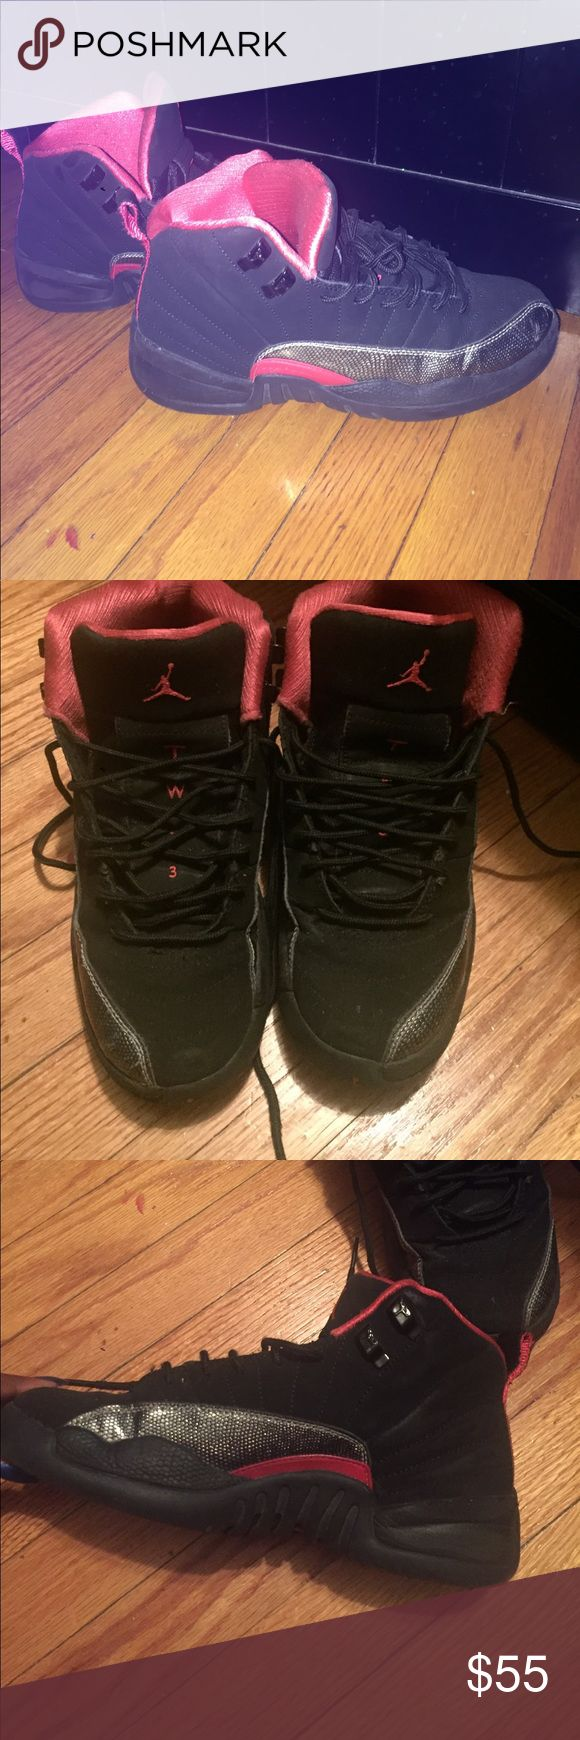 Pink and black Jordan Retro 12 Good condition. Some scuffing on sides from shoes rubbing together. (No box) Jordan Shoes Sneakers